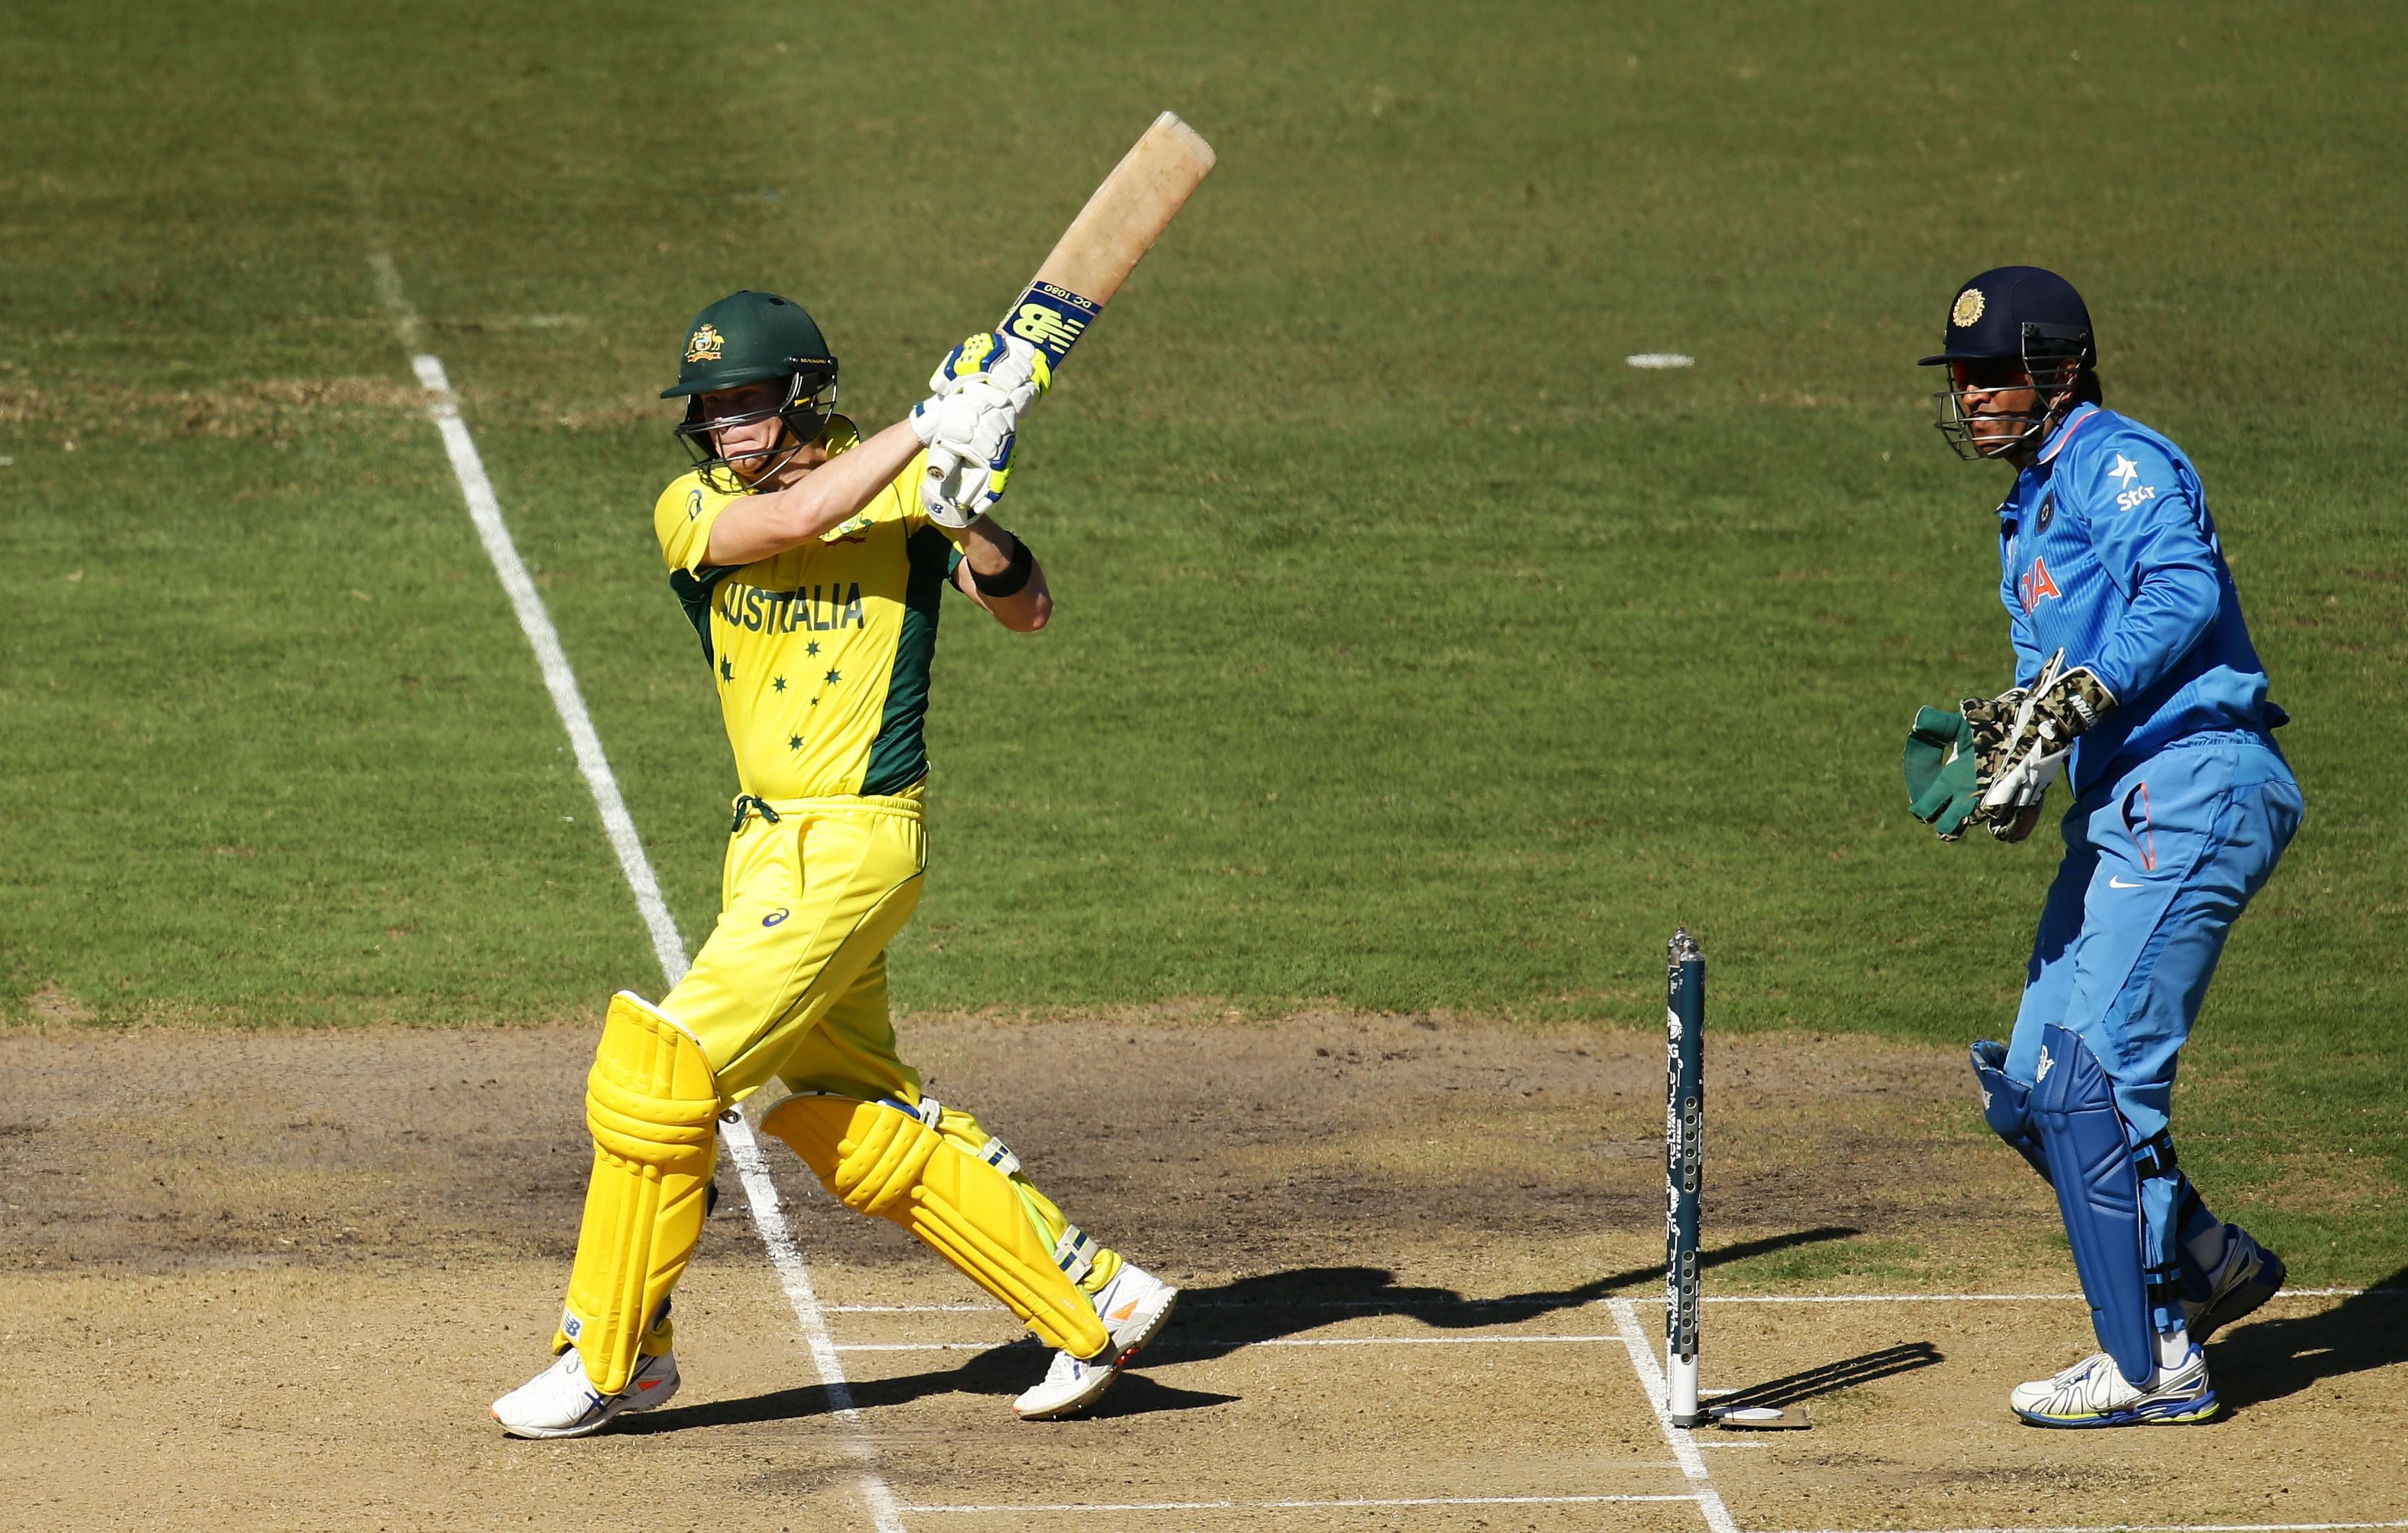 (Steve Smith bats during the 2015 Cricket World Cup Semi Final match at Sydney Cricket Ground on March 26, 2015)